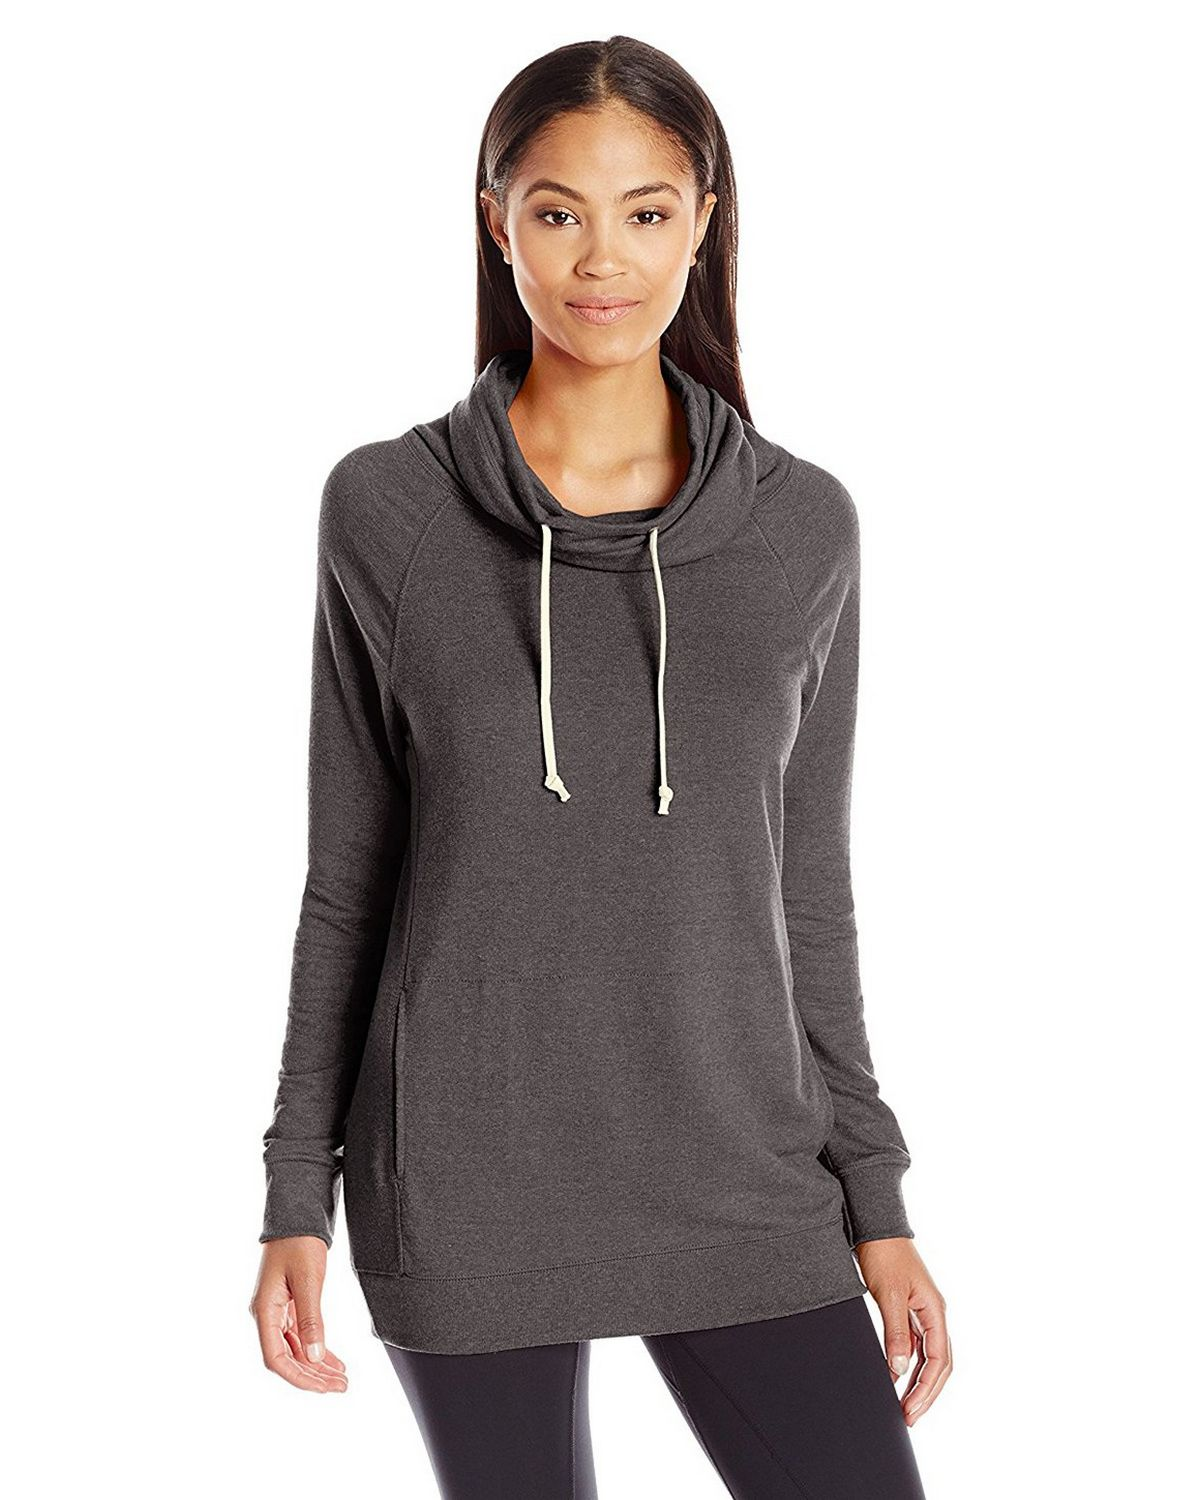 Champion W0942 Womens Funnel Neck Top - Granite Heather - XL W0942